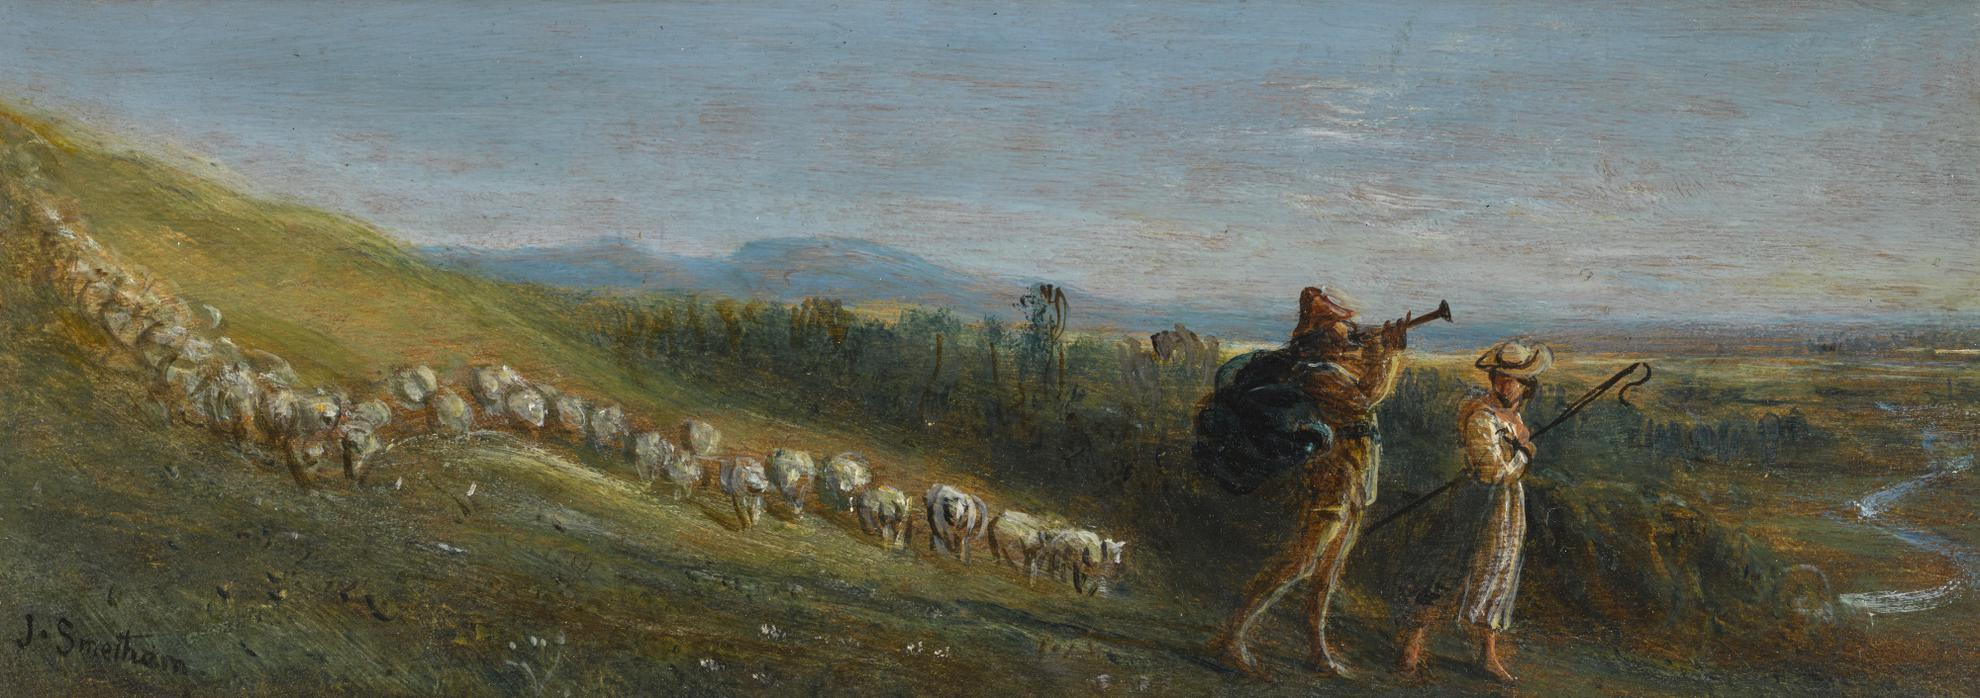 James Smetham - Piping Down The Valleys-